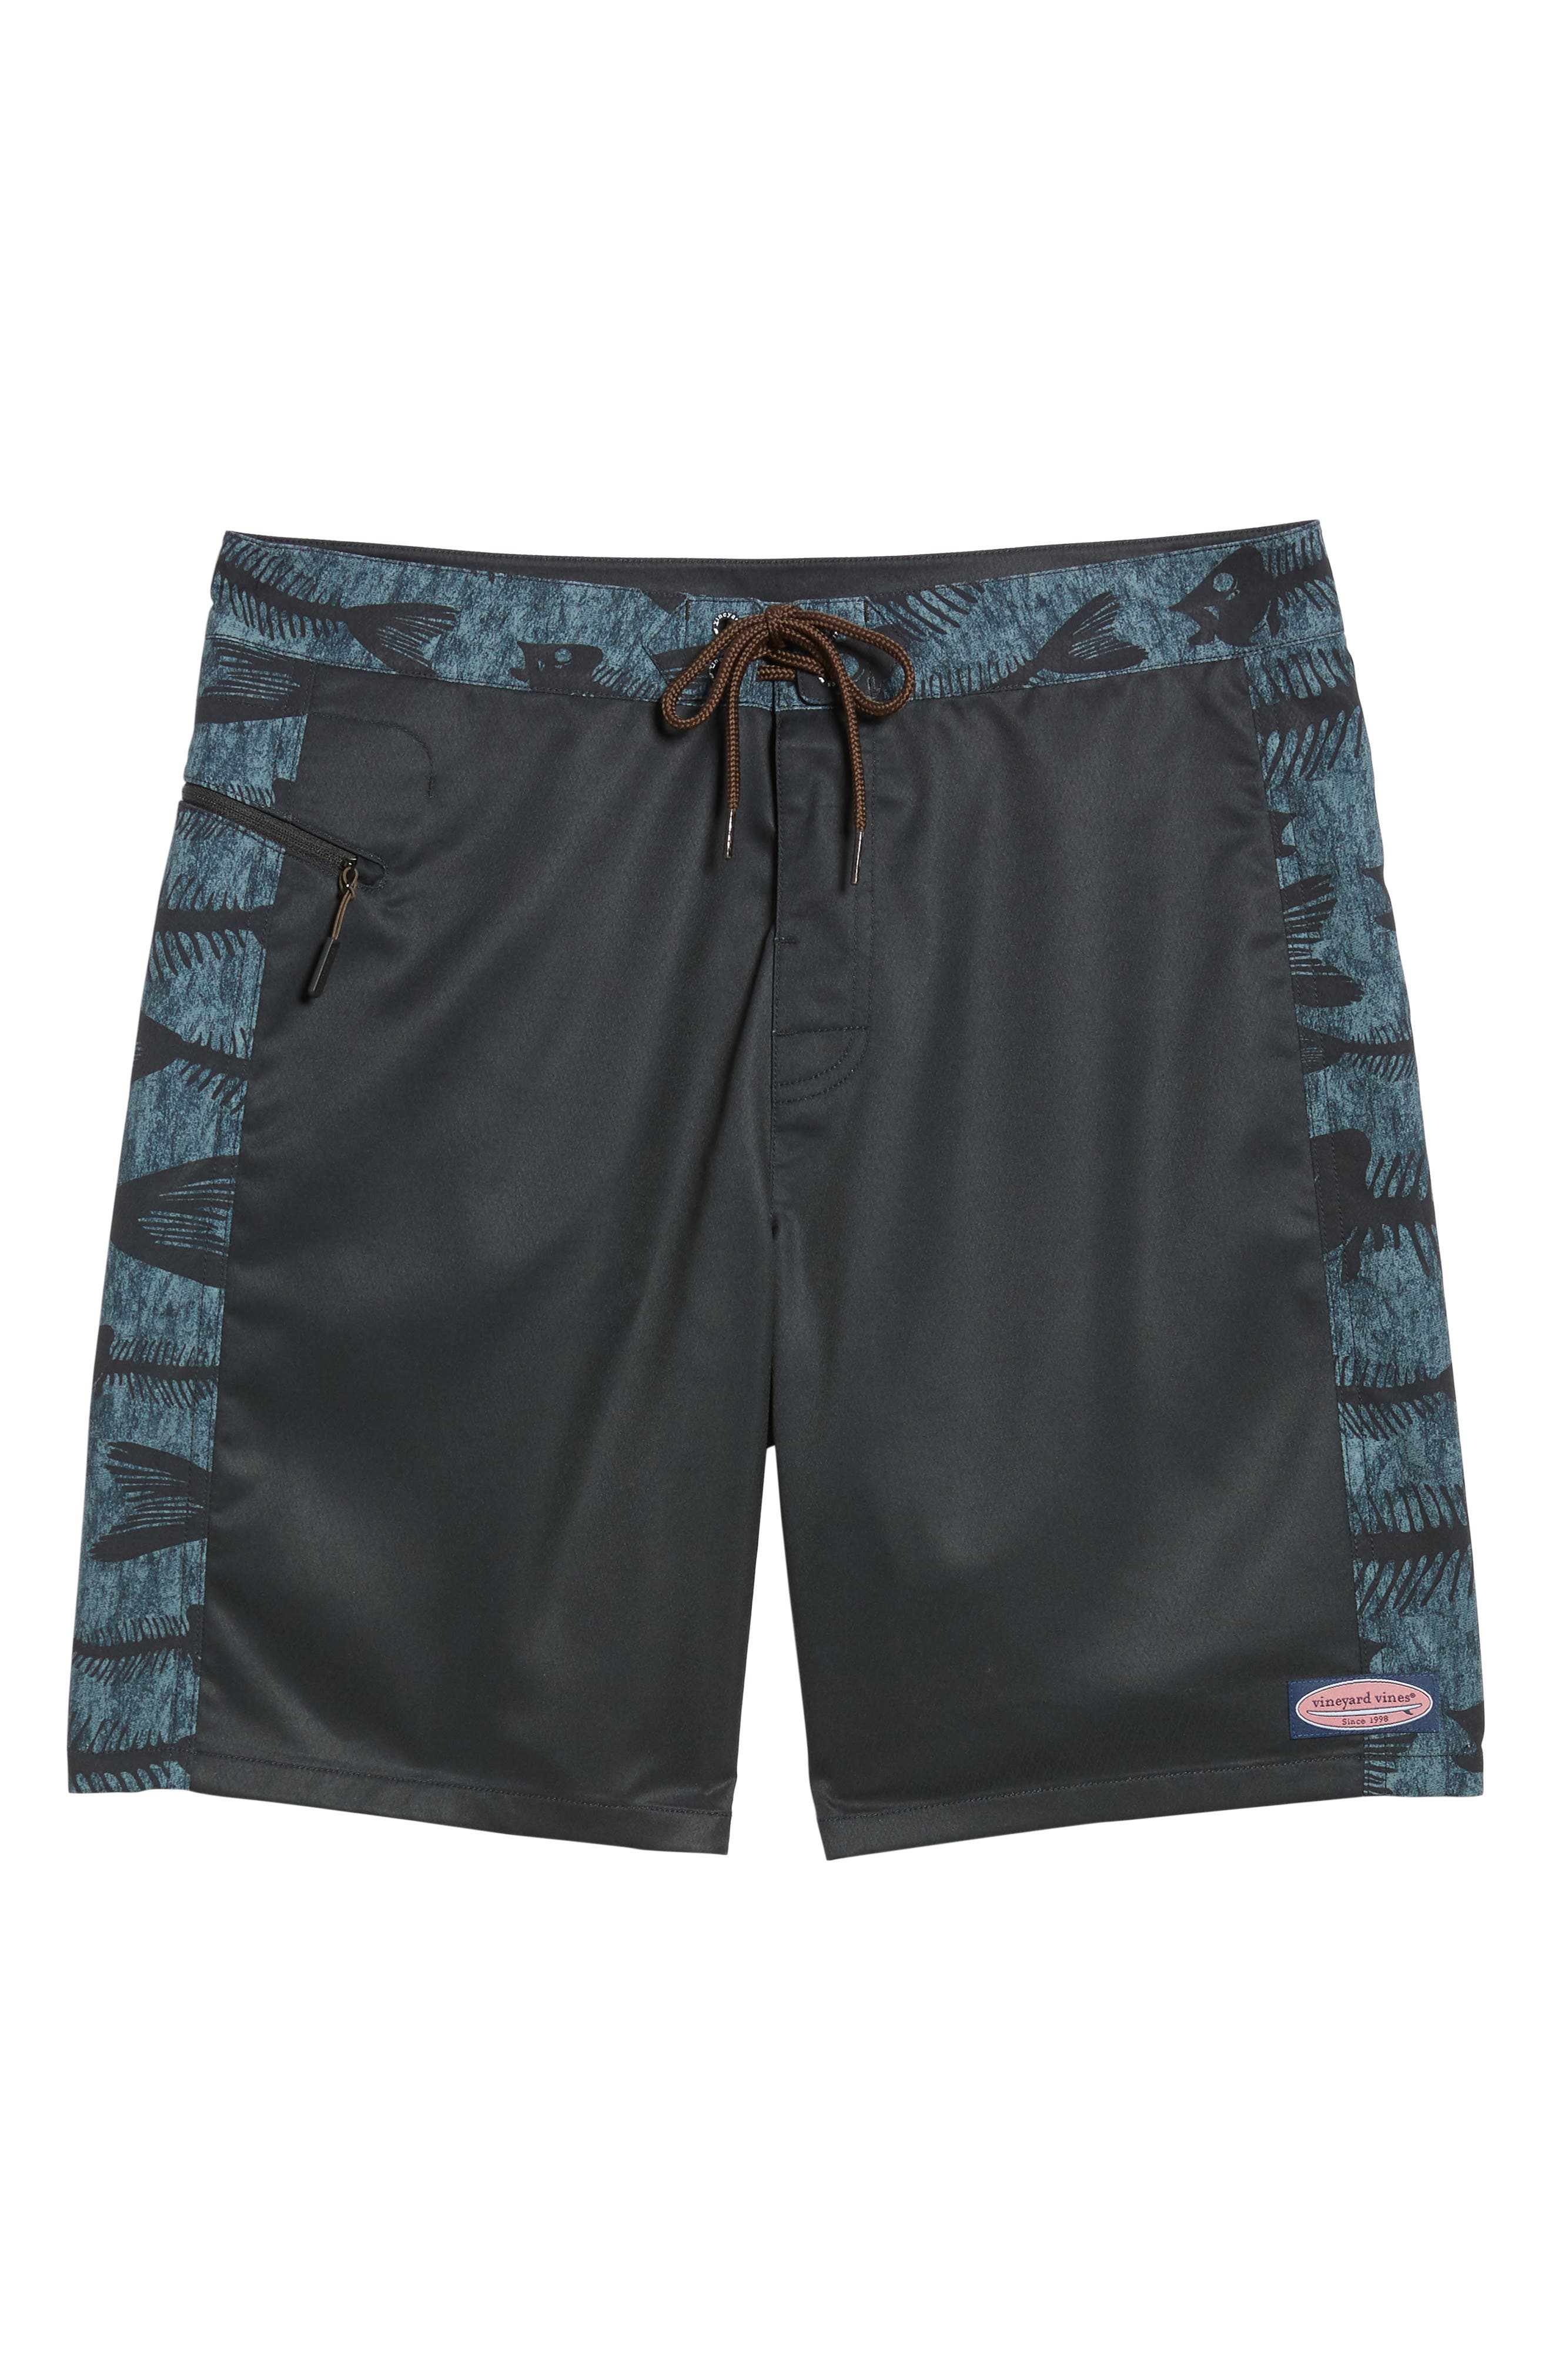 Bonefish Board Shorts,                             Alternate thumbnail 6, color,                             Charcoal Grey